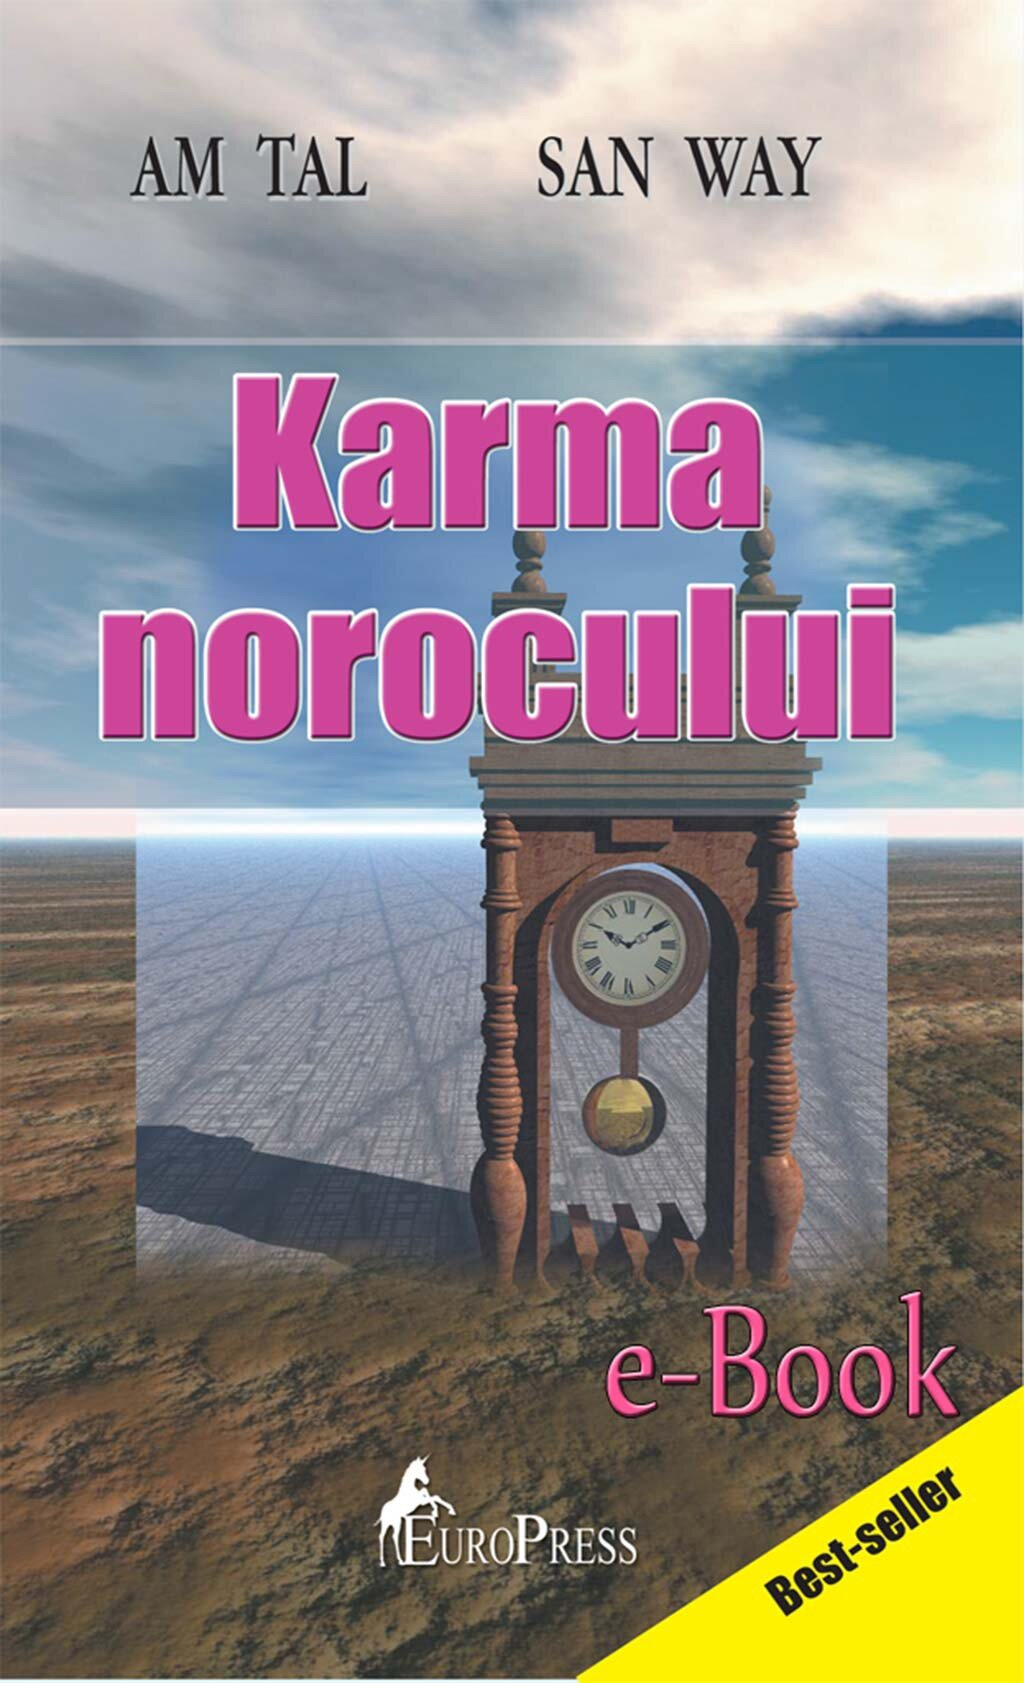 Karma norocului PDF (Download eBook)